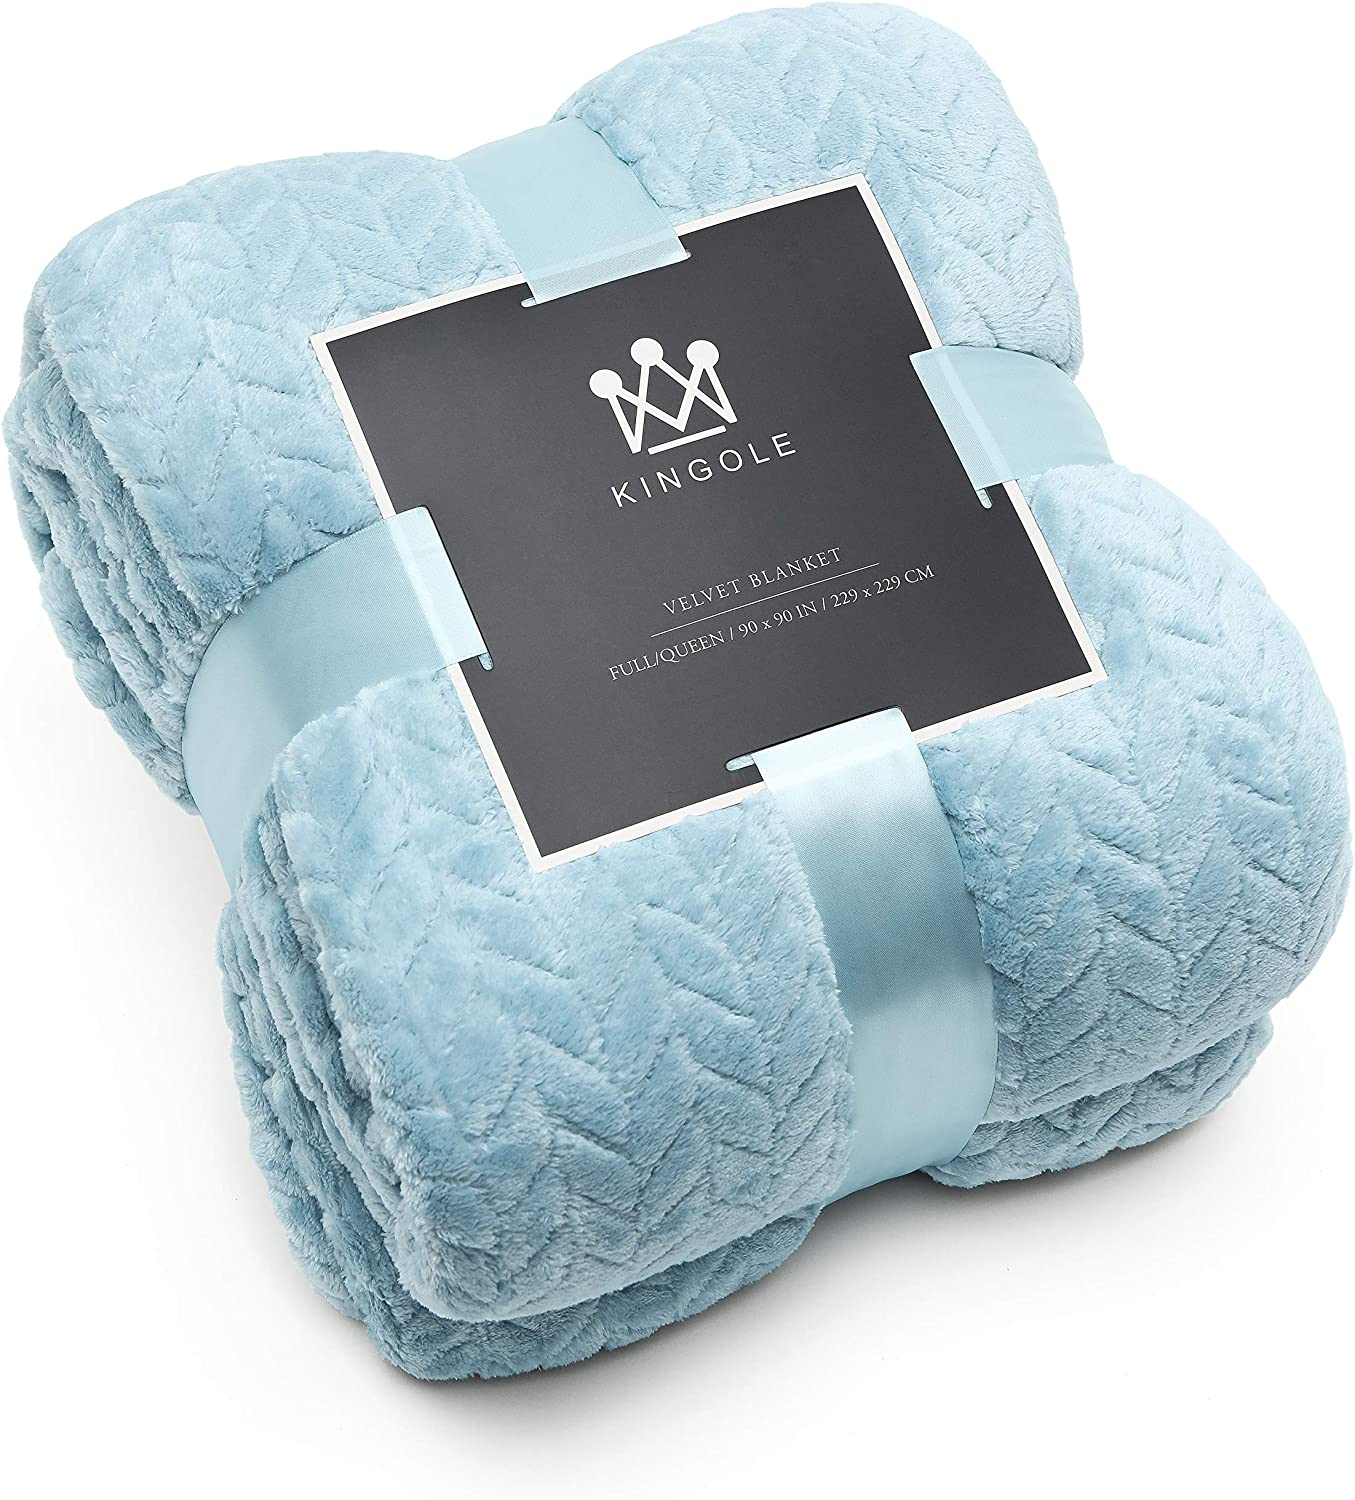 Kingole Flannel Fleece Luxury Throw Jacquard Weave Blanket, Light Blue Twin Size Leaf Pattern Cozy Couch/Bed Super Soft and Warm Plush Microfiber 350GSM (66 x 90 inches)